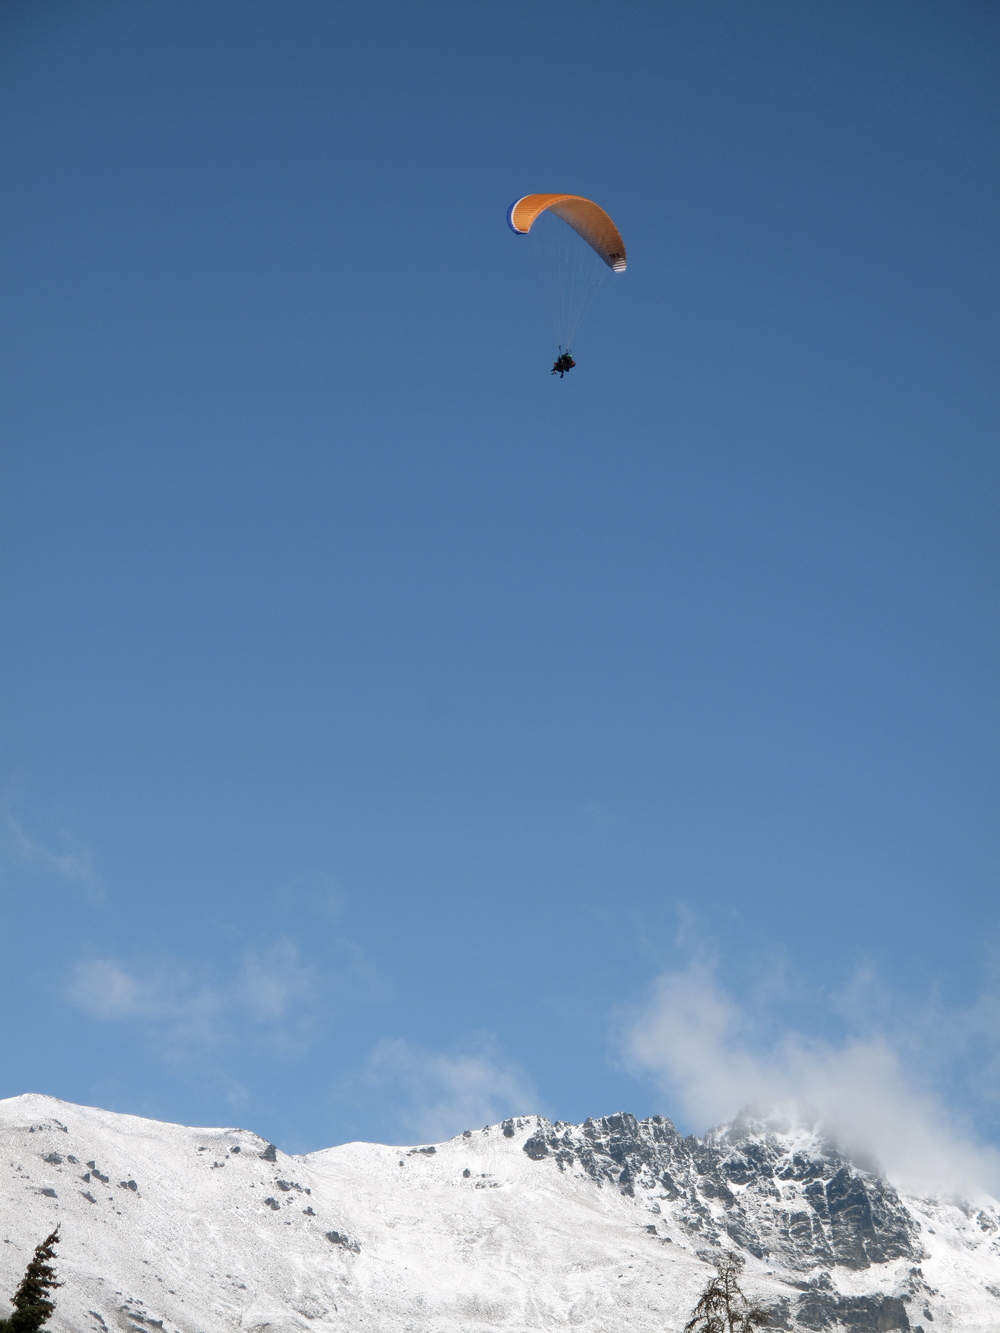 Parachuting in Queenstown above the mountains,NZ